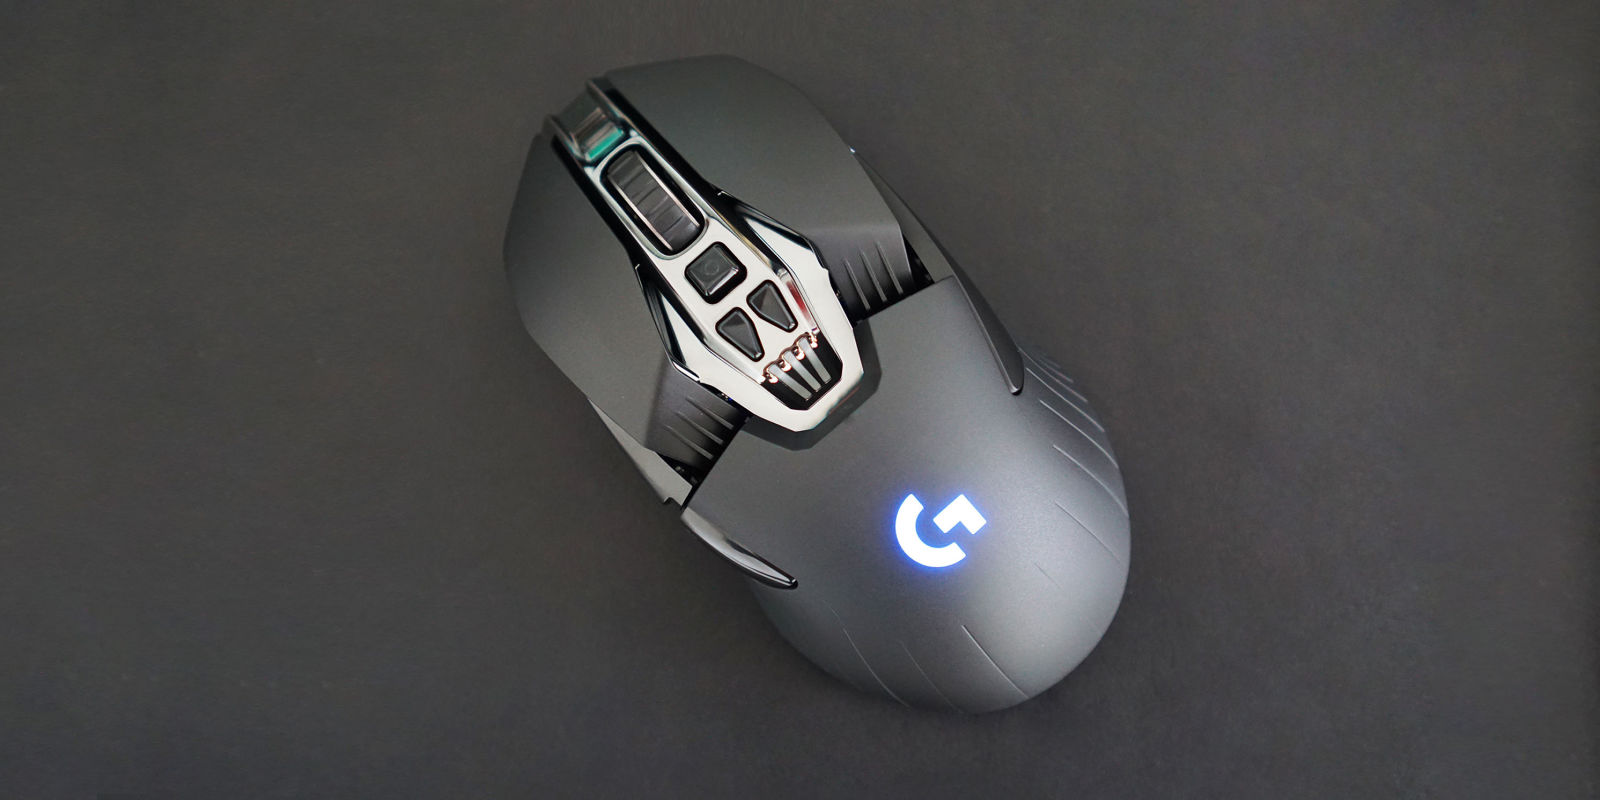 Logitech G900 Chaos Spectrum Wireless Gaming Mouse Review